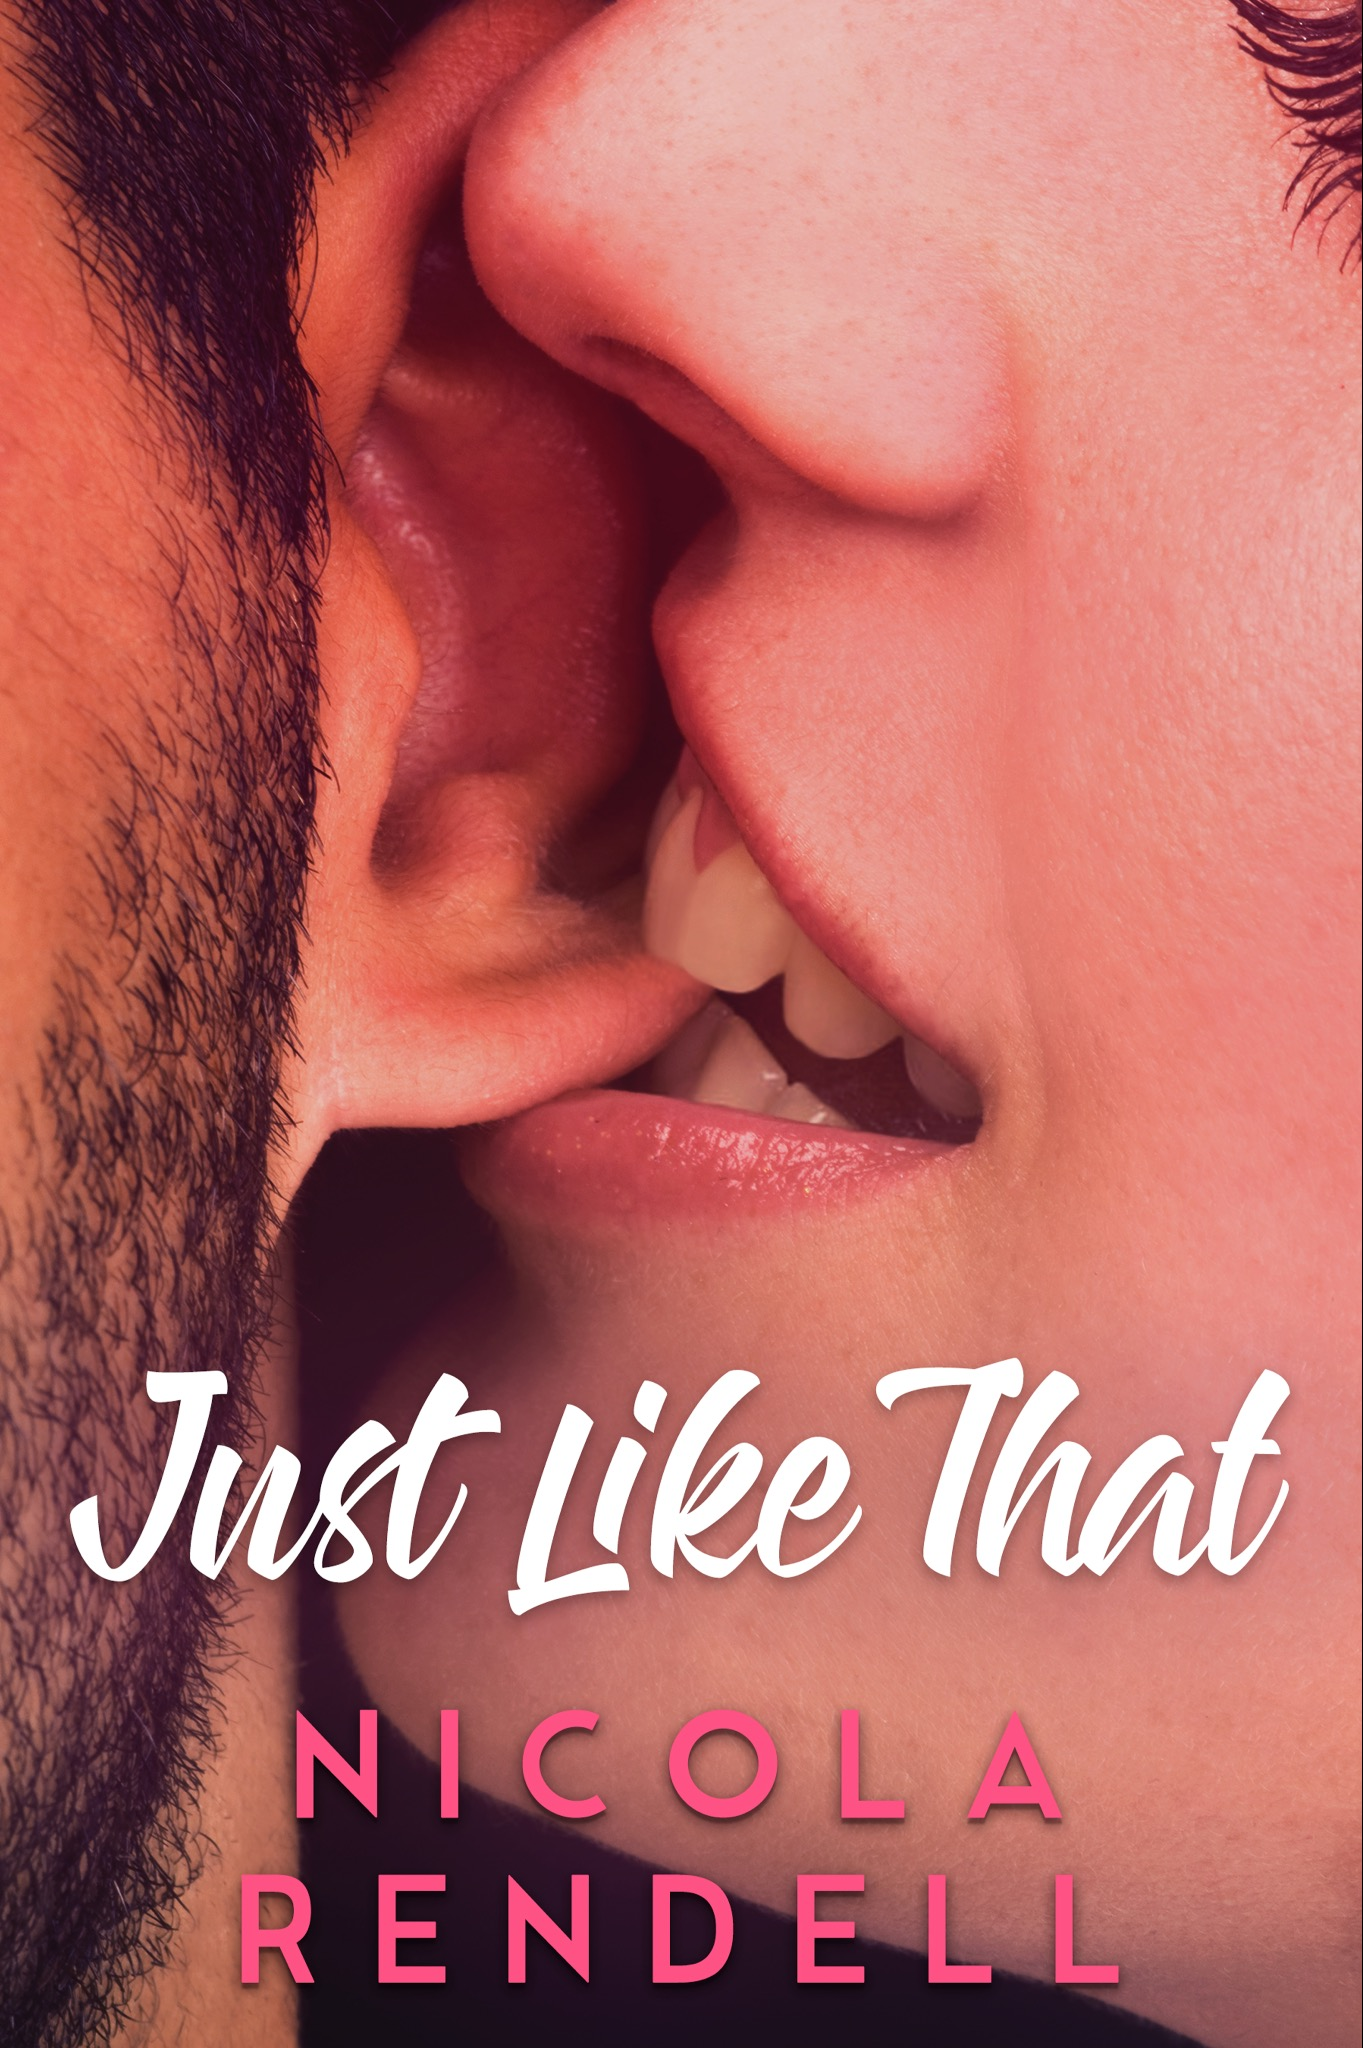 CHAPTER REVEAL: 'Just Like That' Nicola Rendell